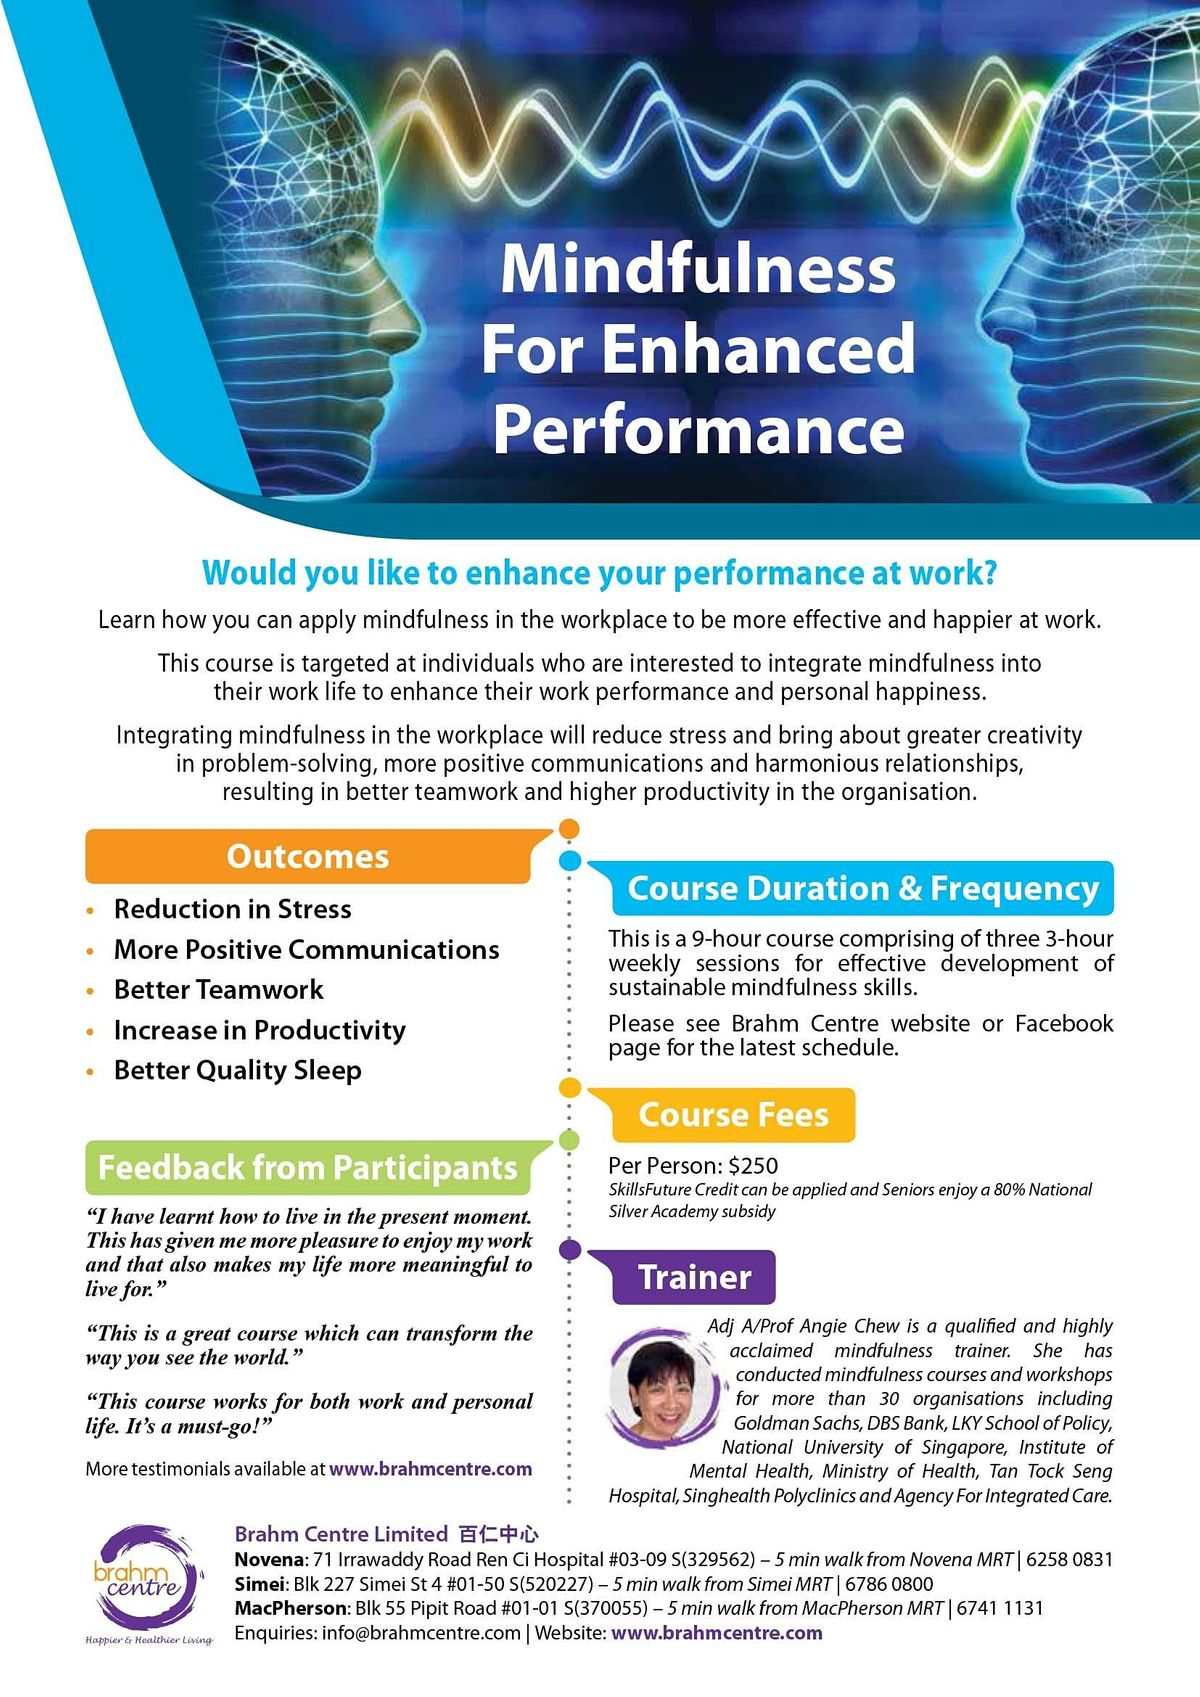 Mindfulness for Enhanced Performance Course- Sept 11 (4 sessions) - Newton